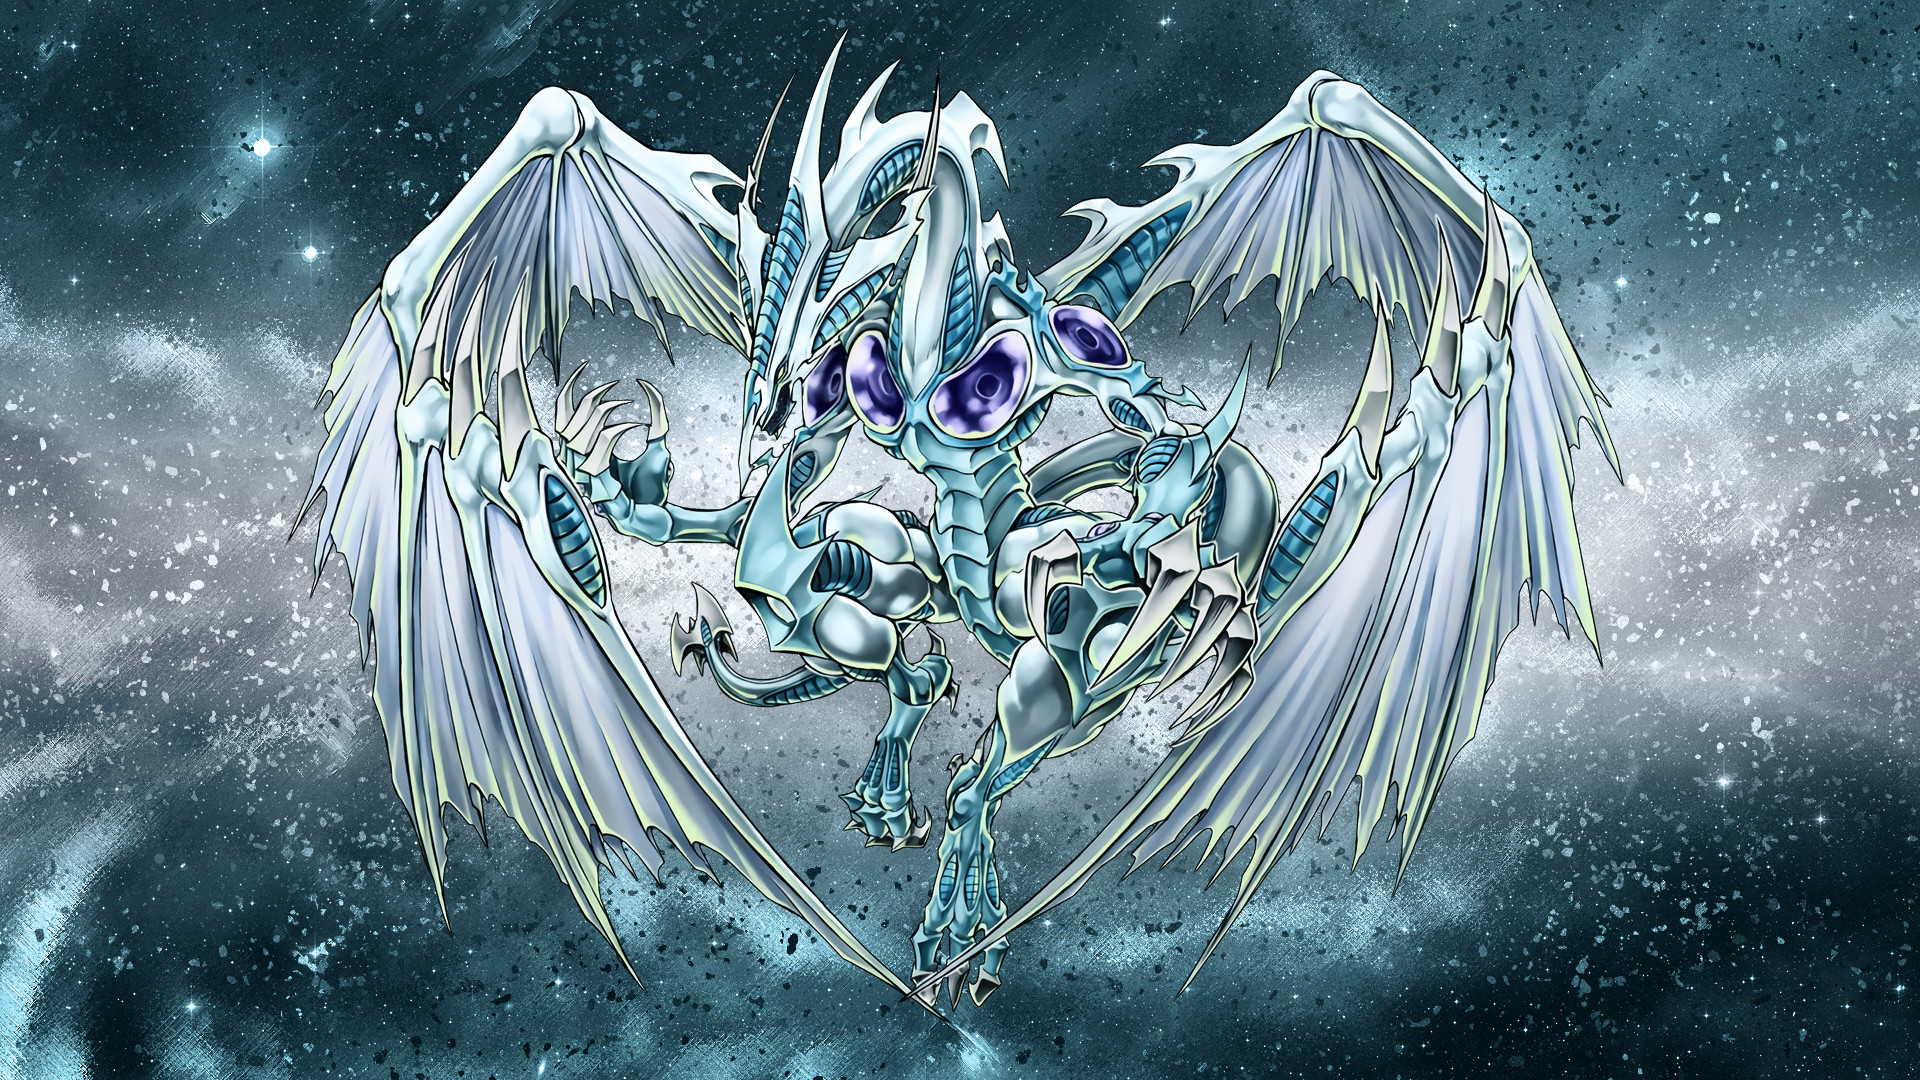 Res: 1920x1080, Stardust Dragon Wallpapers,  px › M.F. Backgrounds Photos Gallery